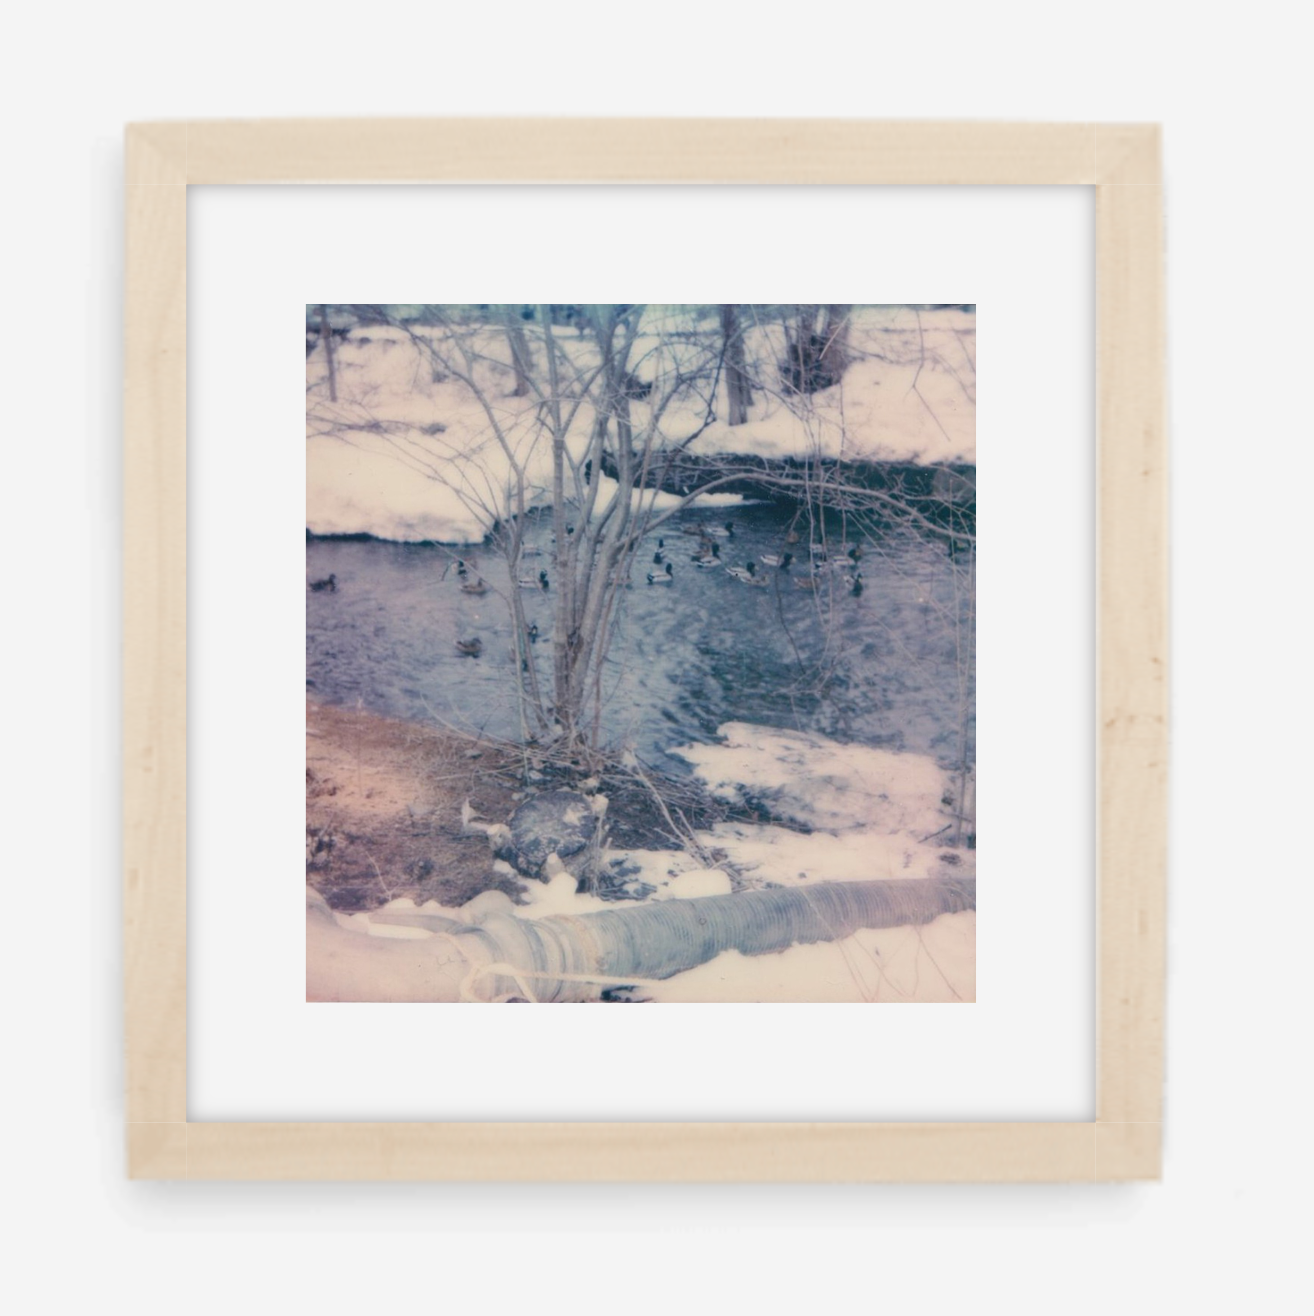 winter ducks - 5x5.2 / Gallery Natural / With Mat